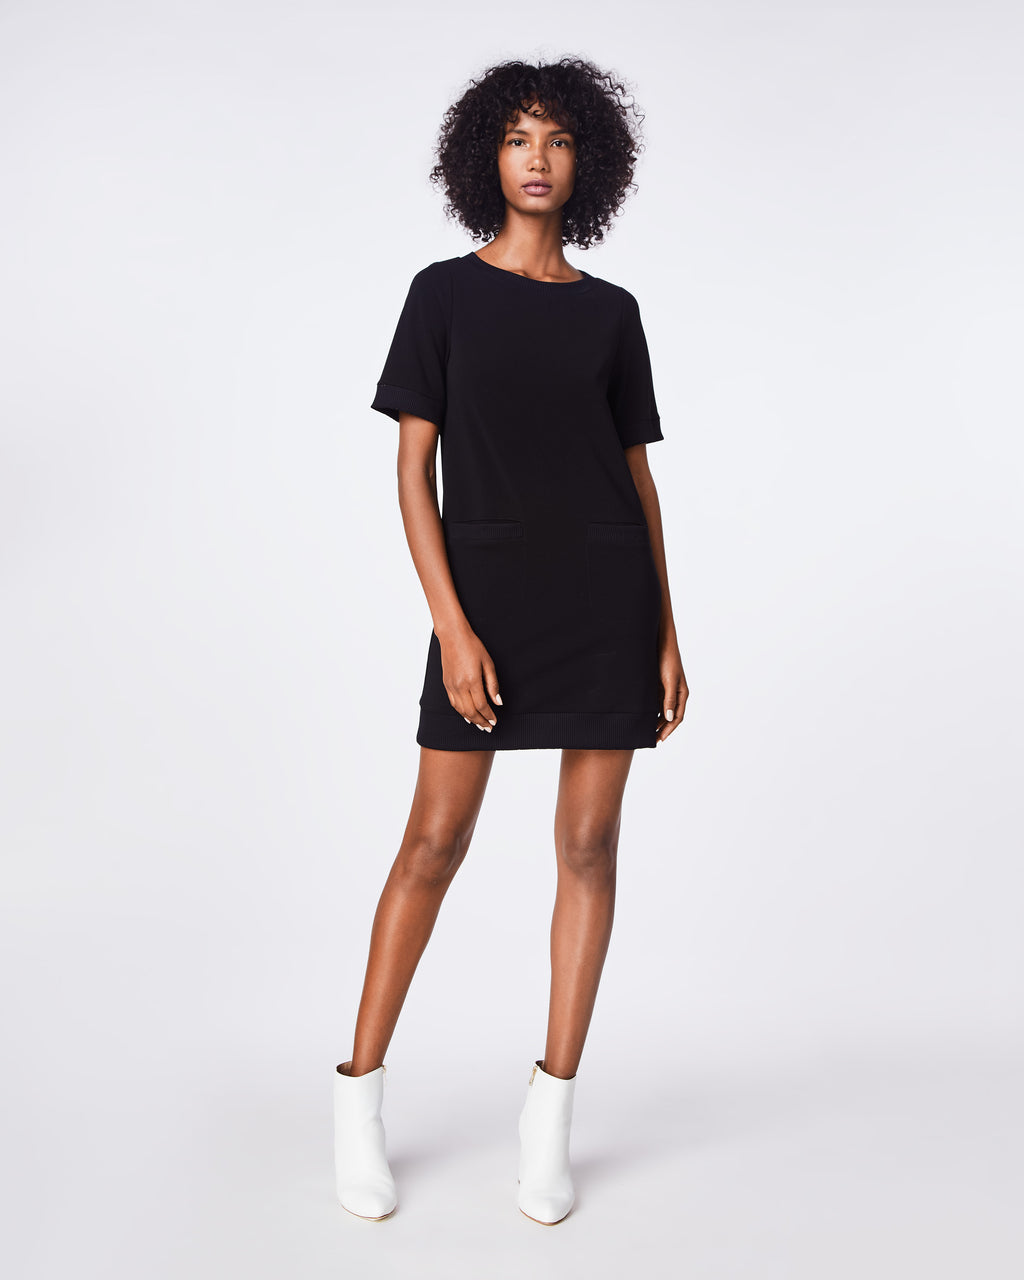 BH10428 - PONTE SHIRT DRESS - dresses - short - THIS SHORT SLEEVE PONTE KNIT DRESS IS WARDROBE STAPLE - SIMPLE, VERSATILE, AND COMFORTABLE.